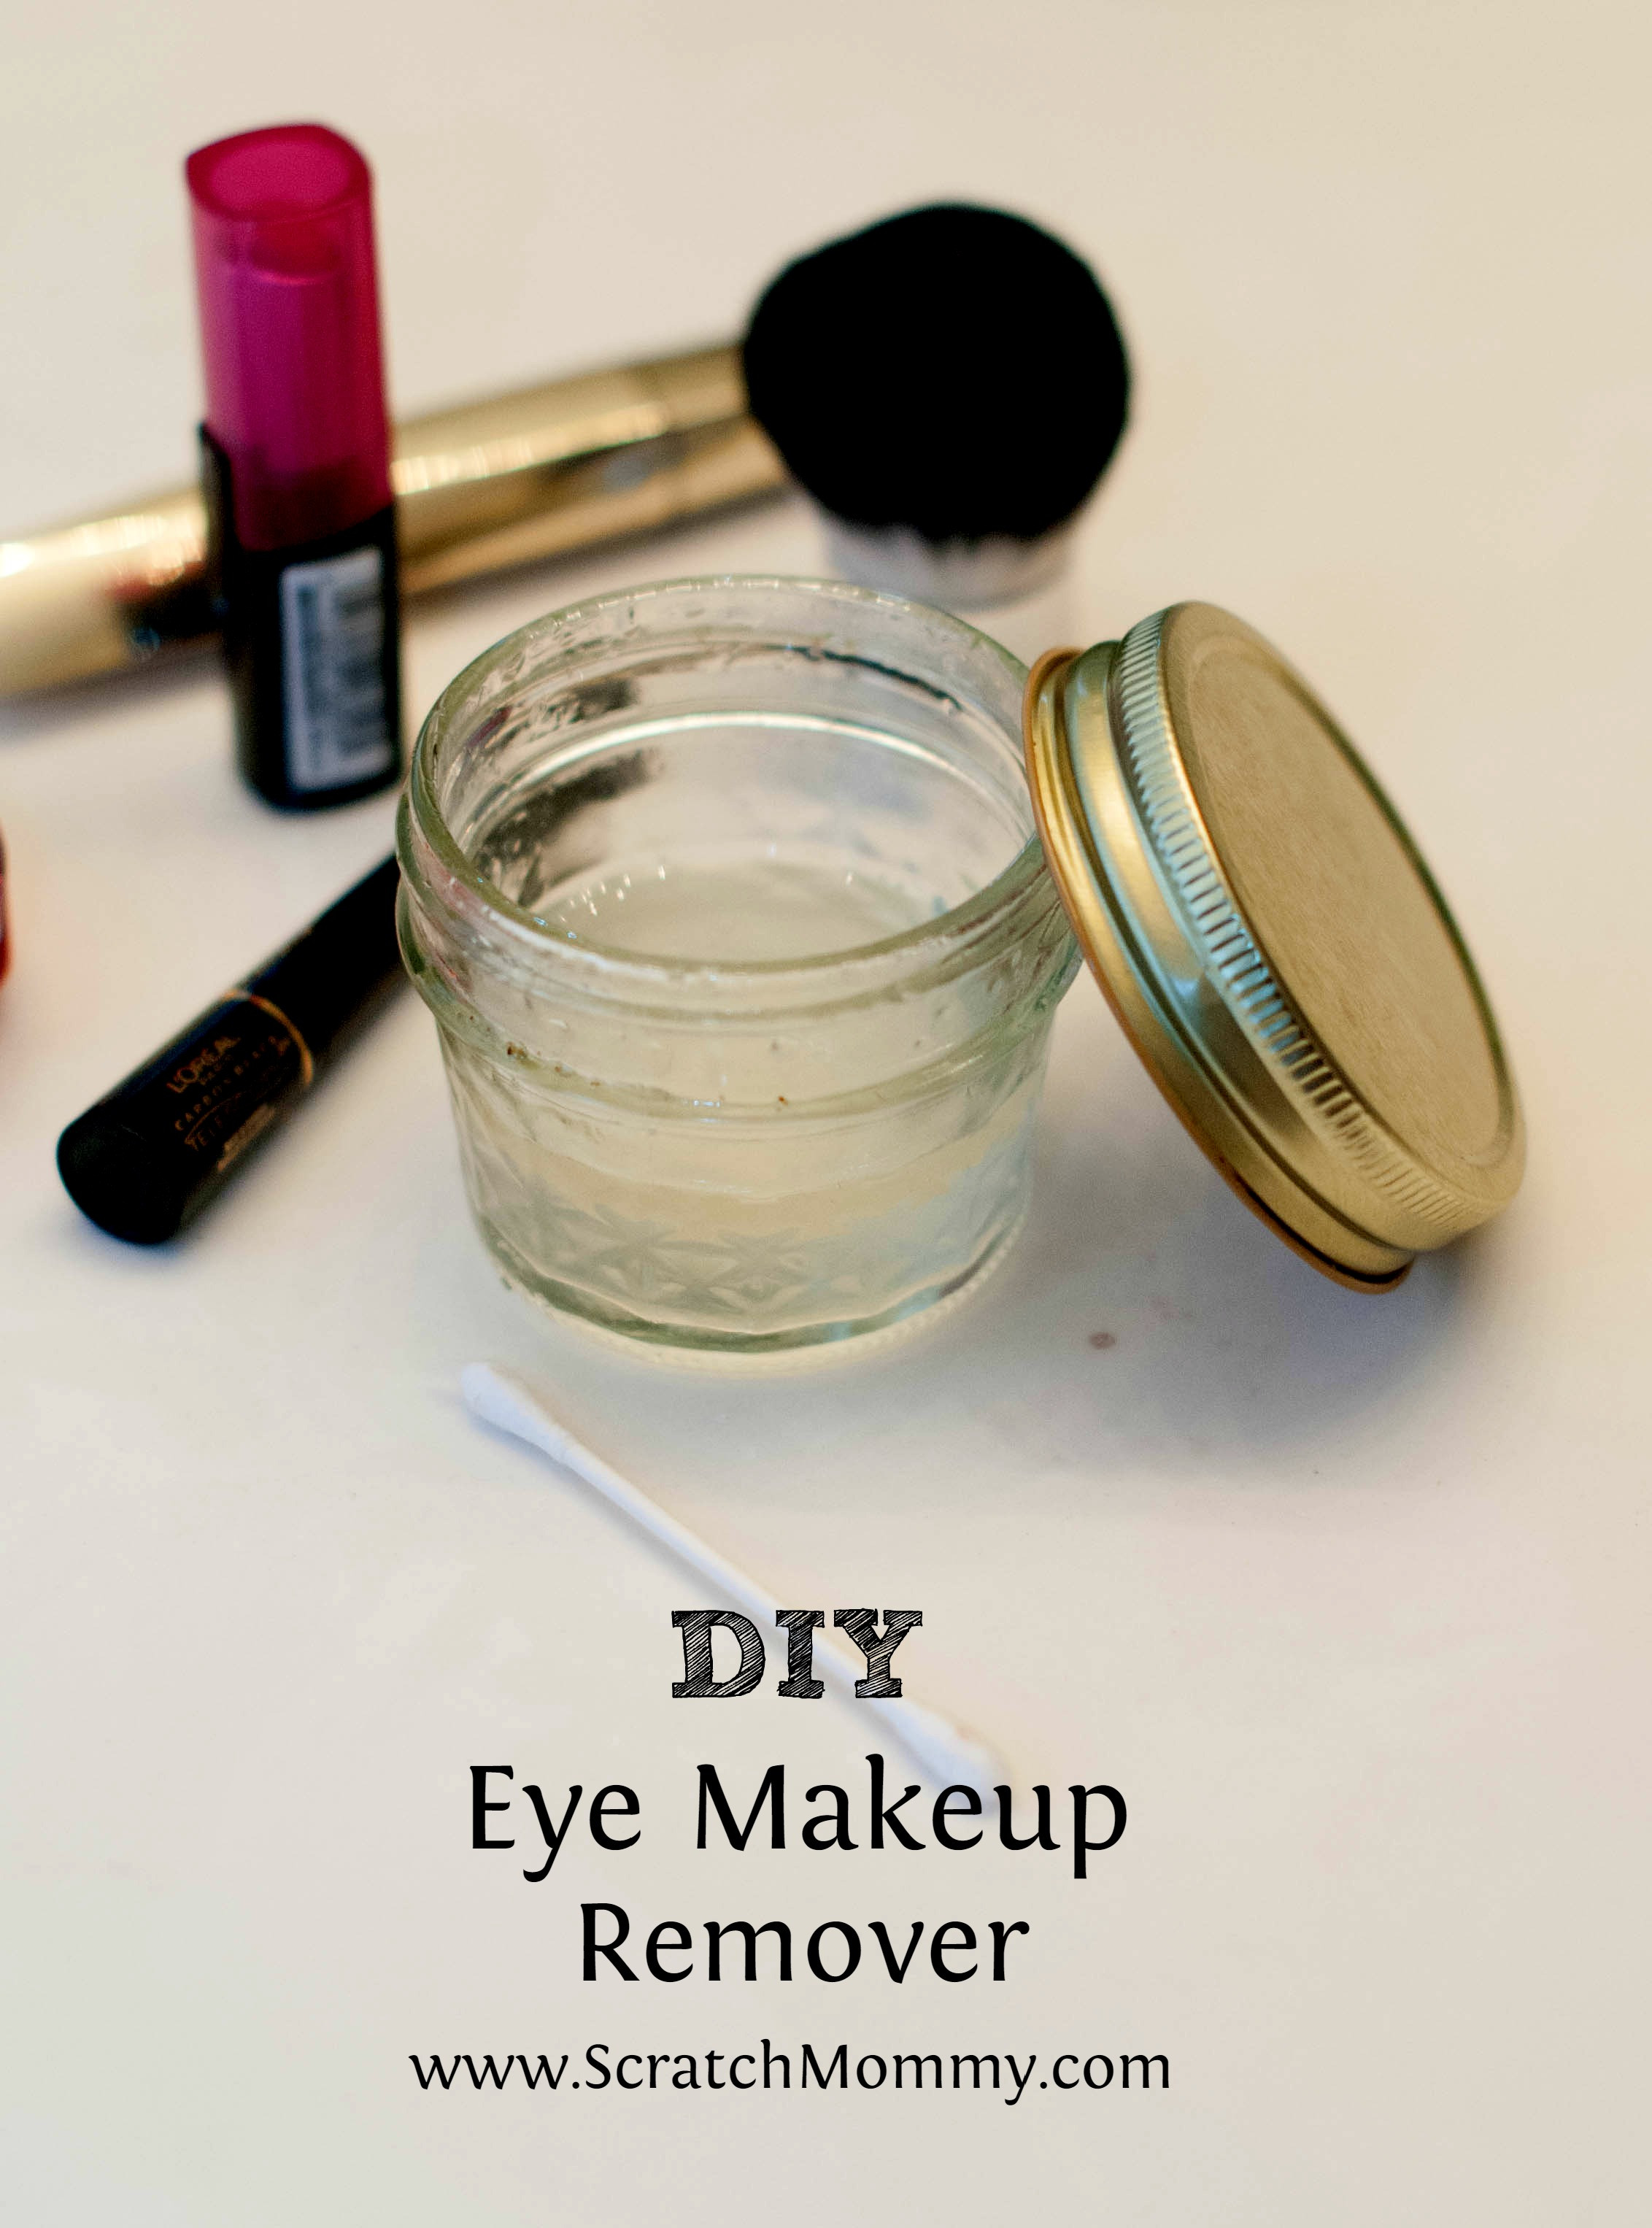 Best ideas about DIY Makeup Remover . Save or Pin DIY Eye Makeup Remover Pronounce Now.